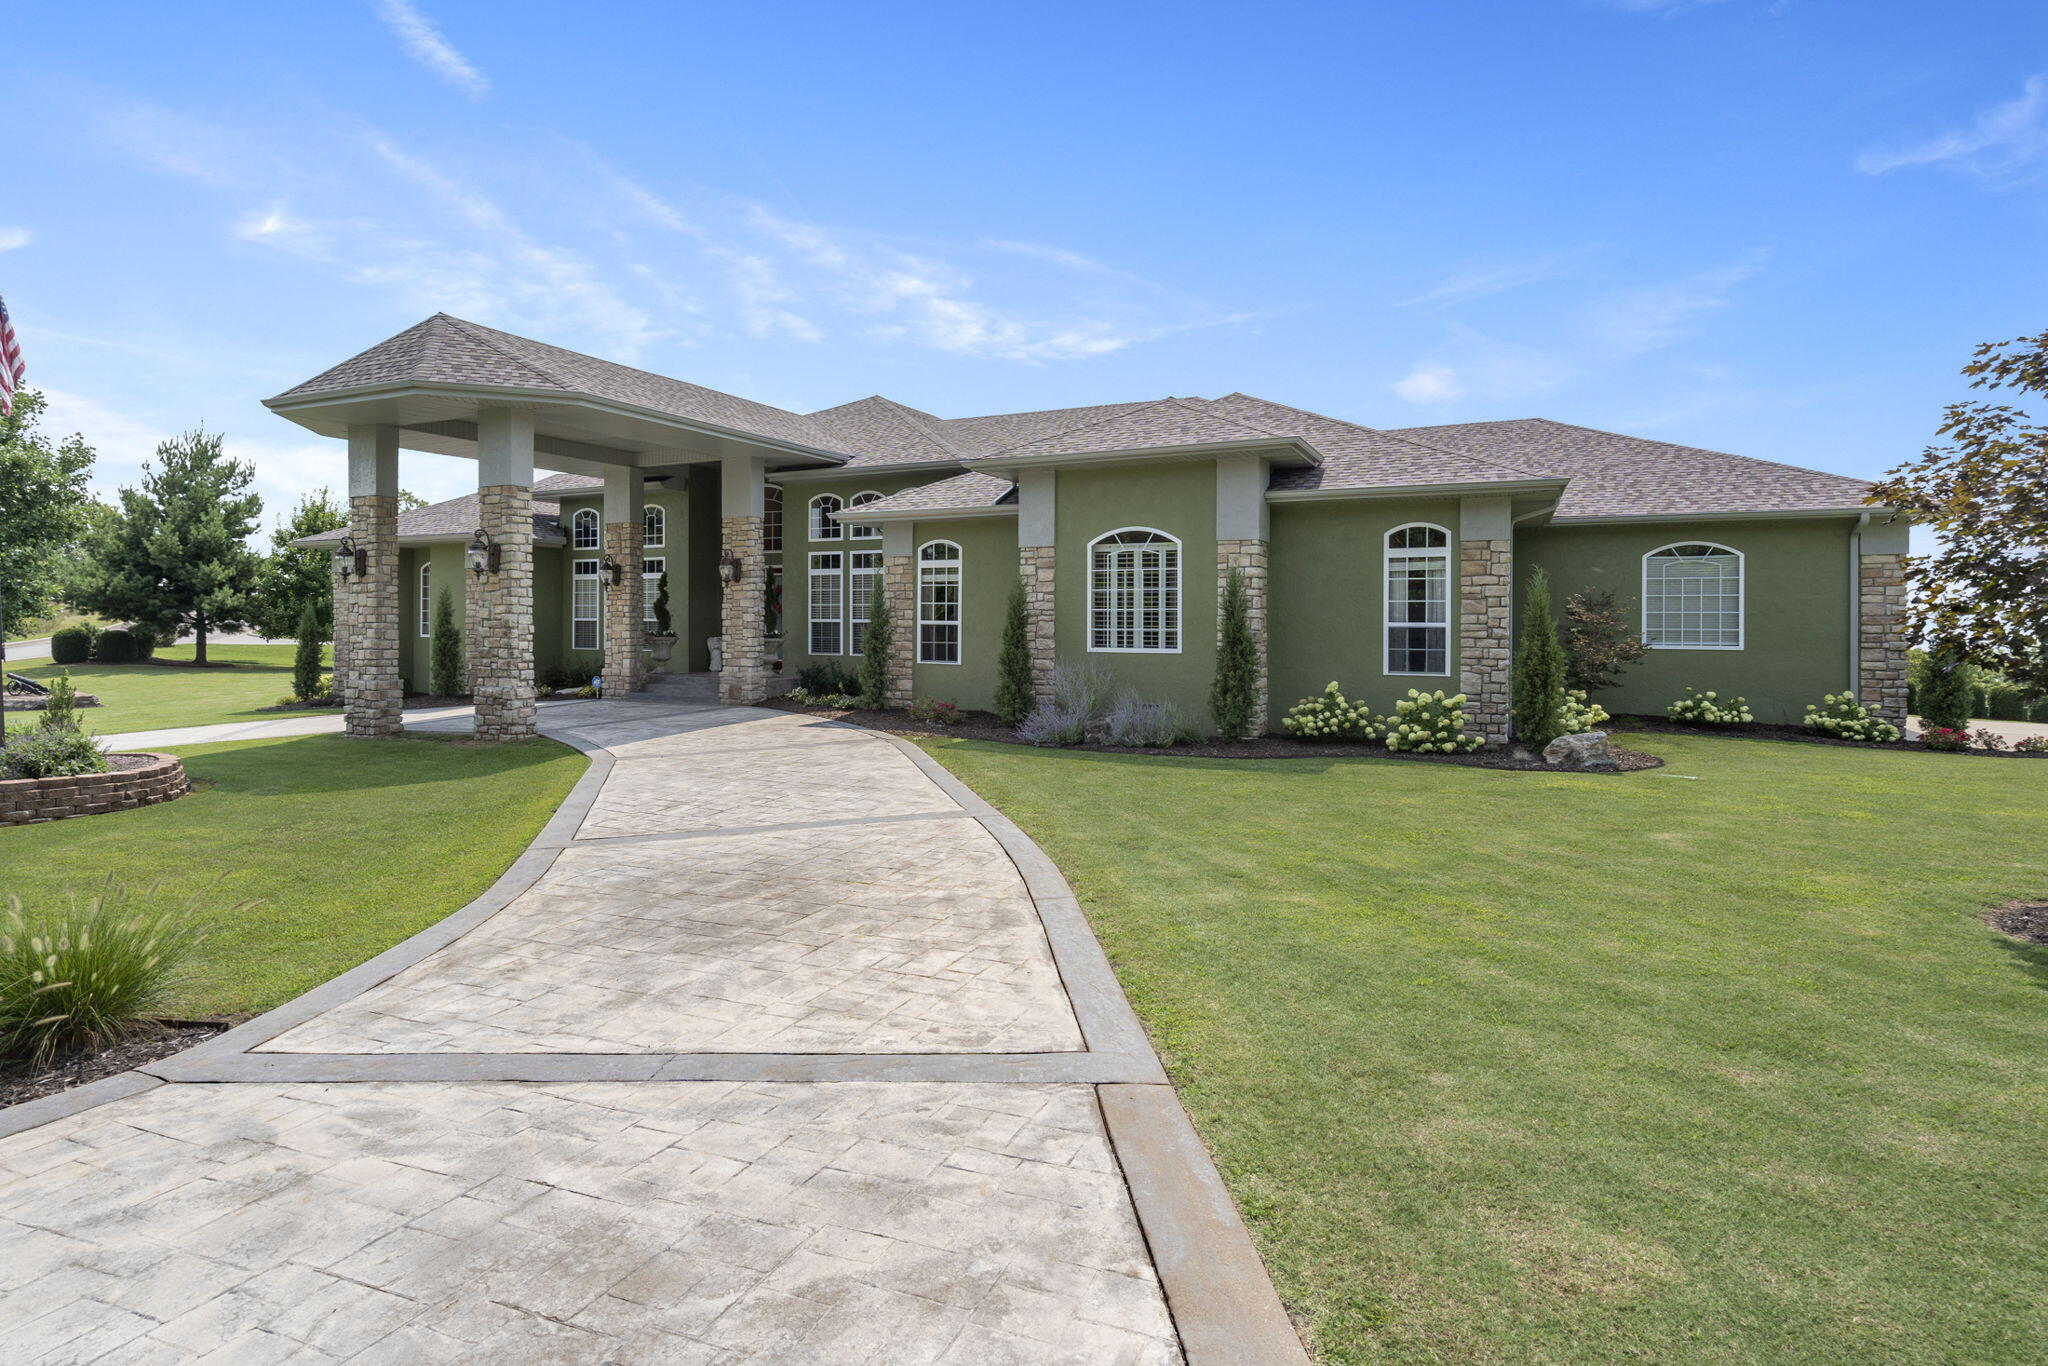 115 Cove View Drive Hollister, MO 65672